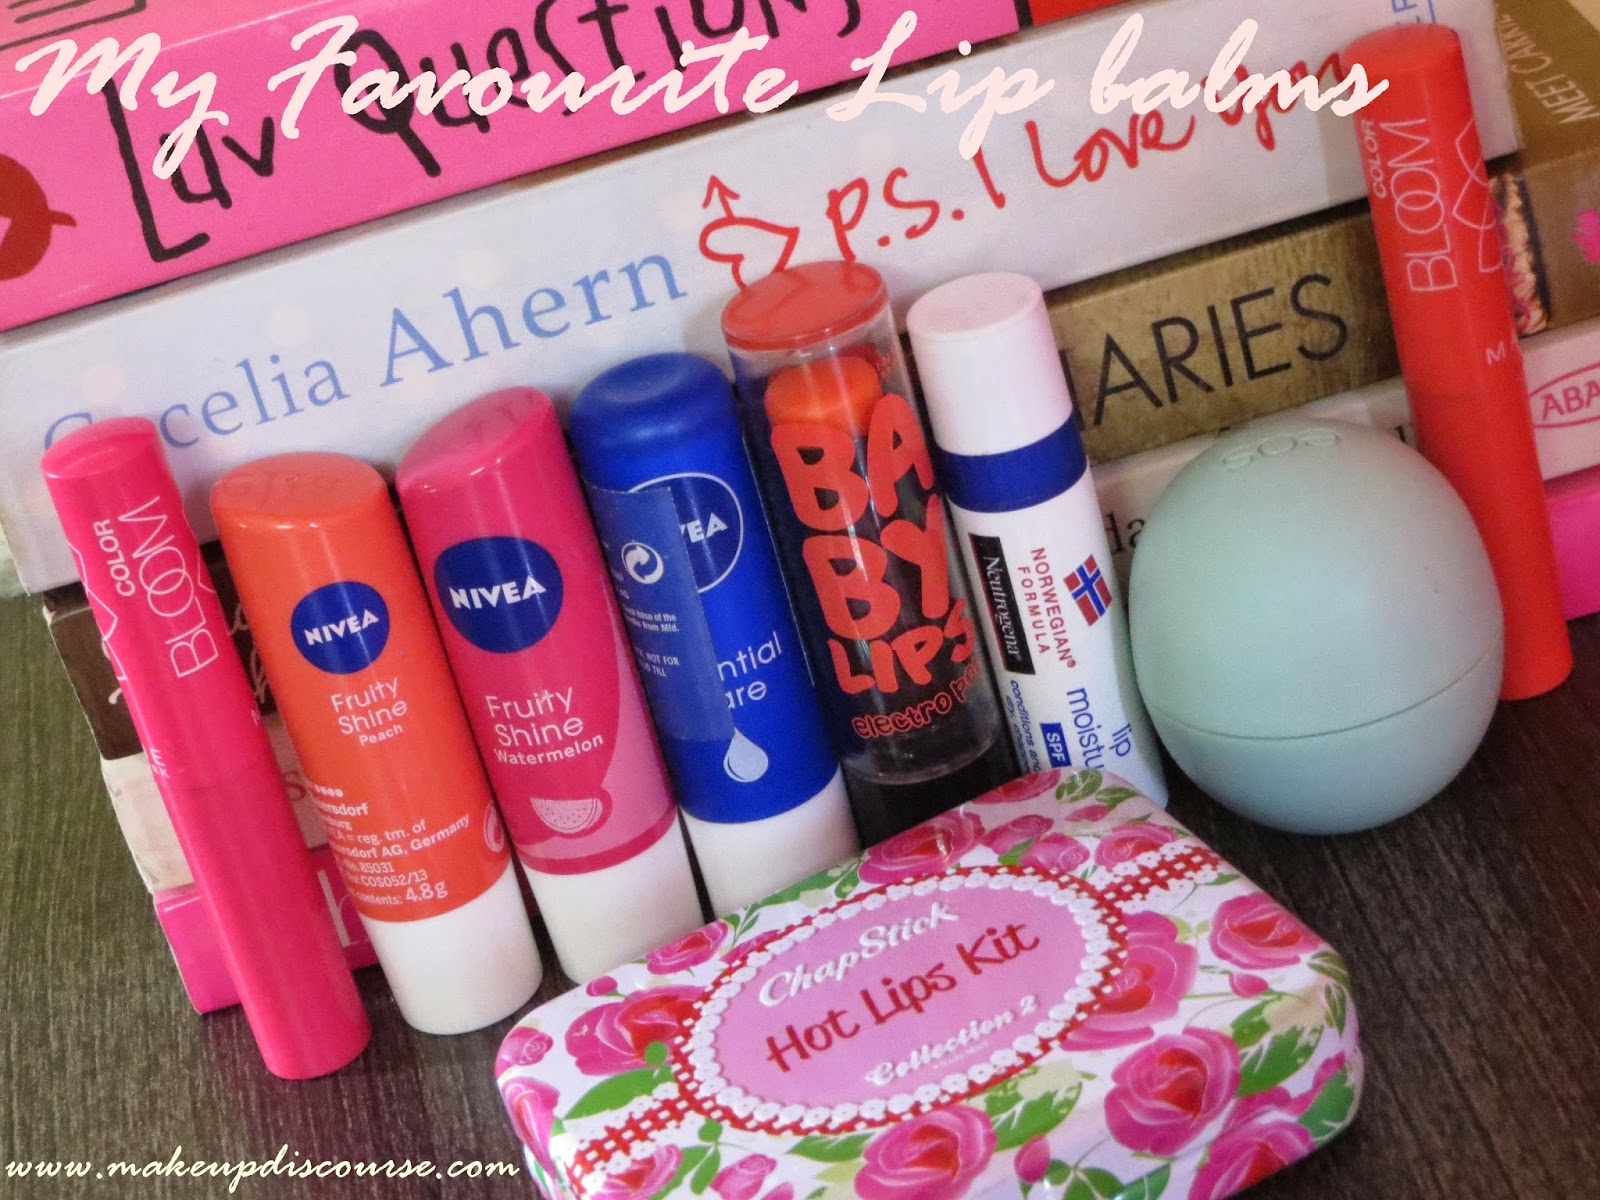 Maybelline Baby Lips Electro Pop, Maybelline Lip Bloom, Neutrogena Lip Moisturizer, Chapstick Lip Moisturizer, Nivea Fruity shine watermelon and peach and essential care, EOS Lip balm sweet mint in India